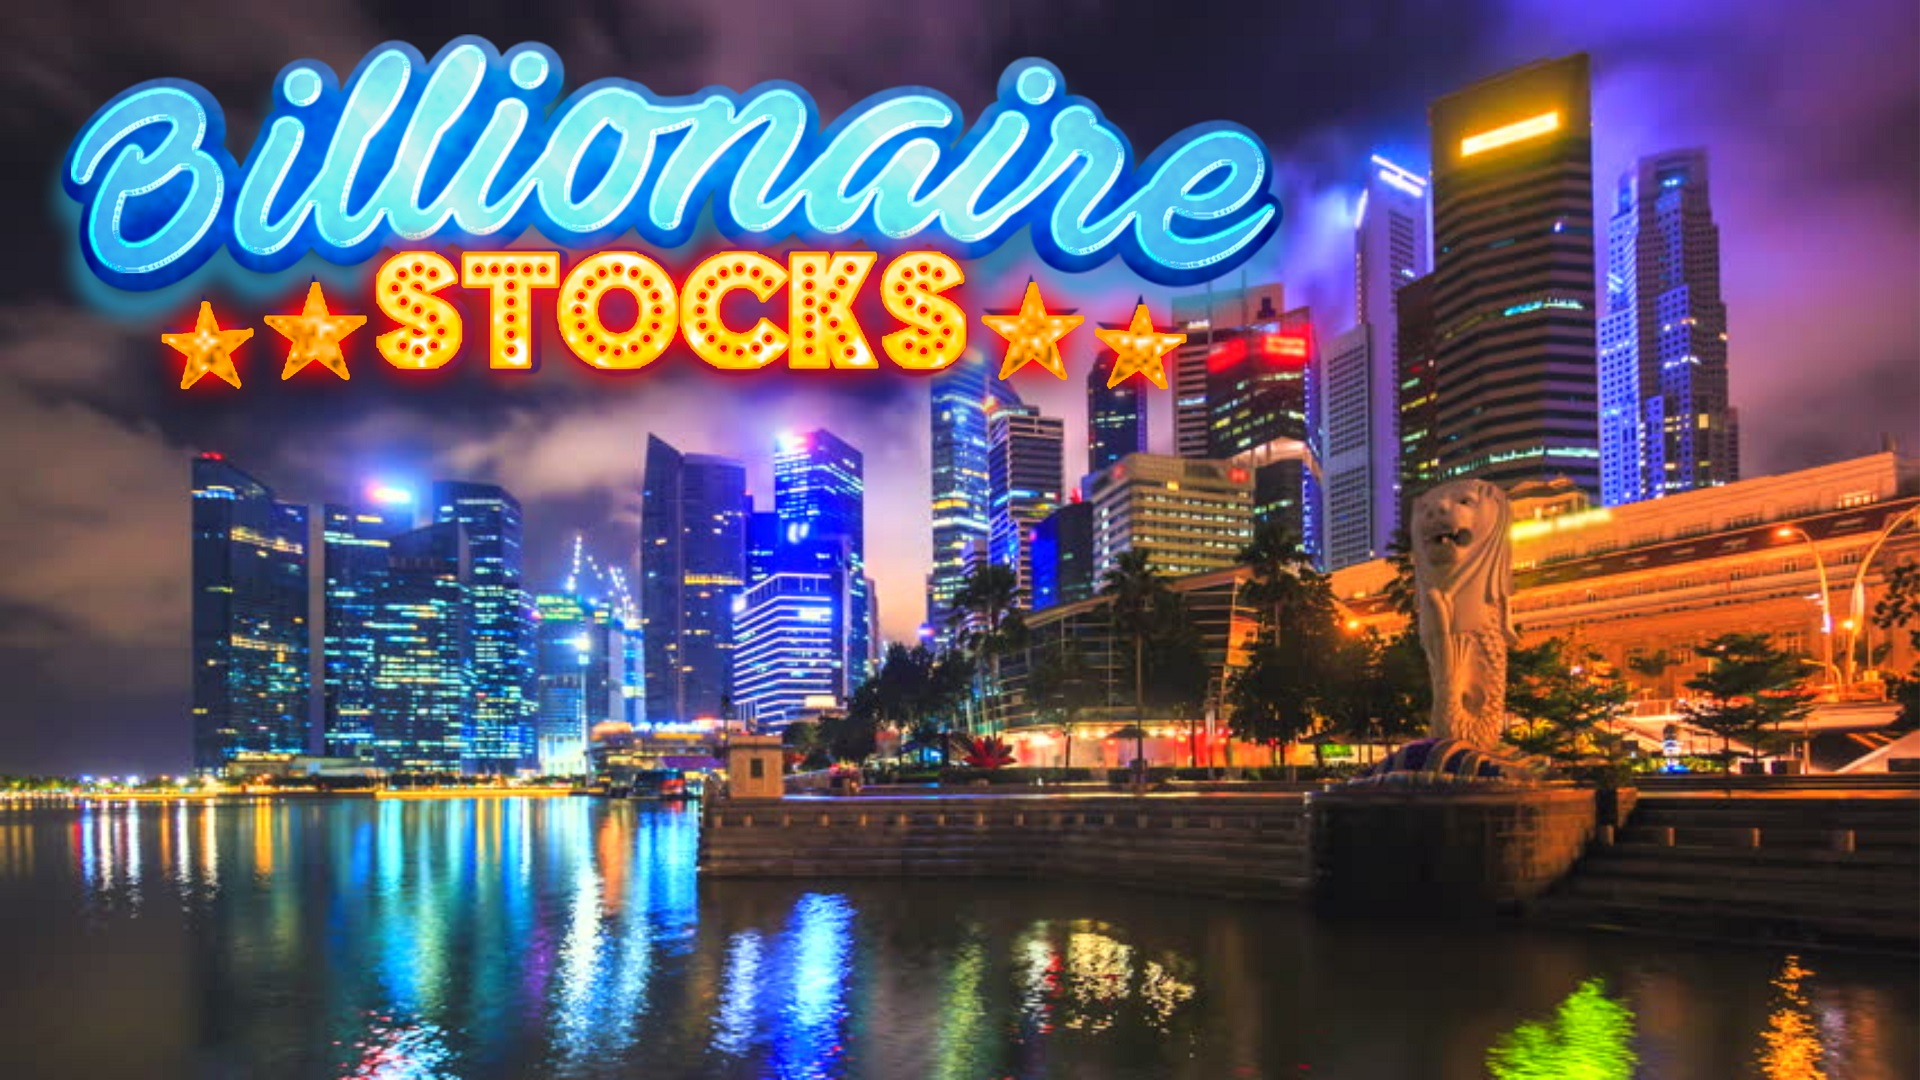 Billionaire Stocks